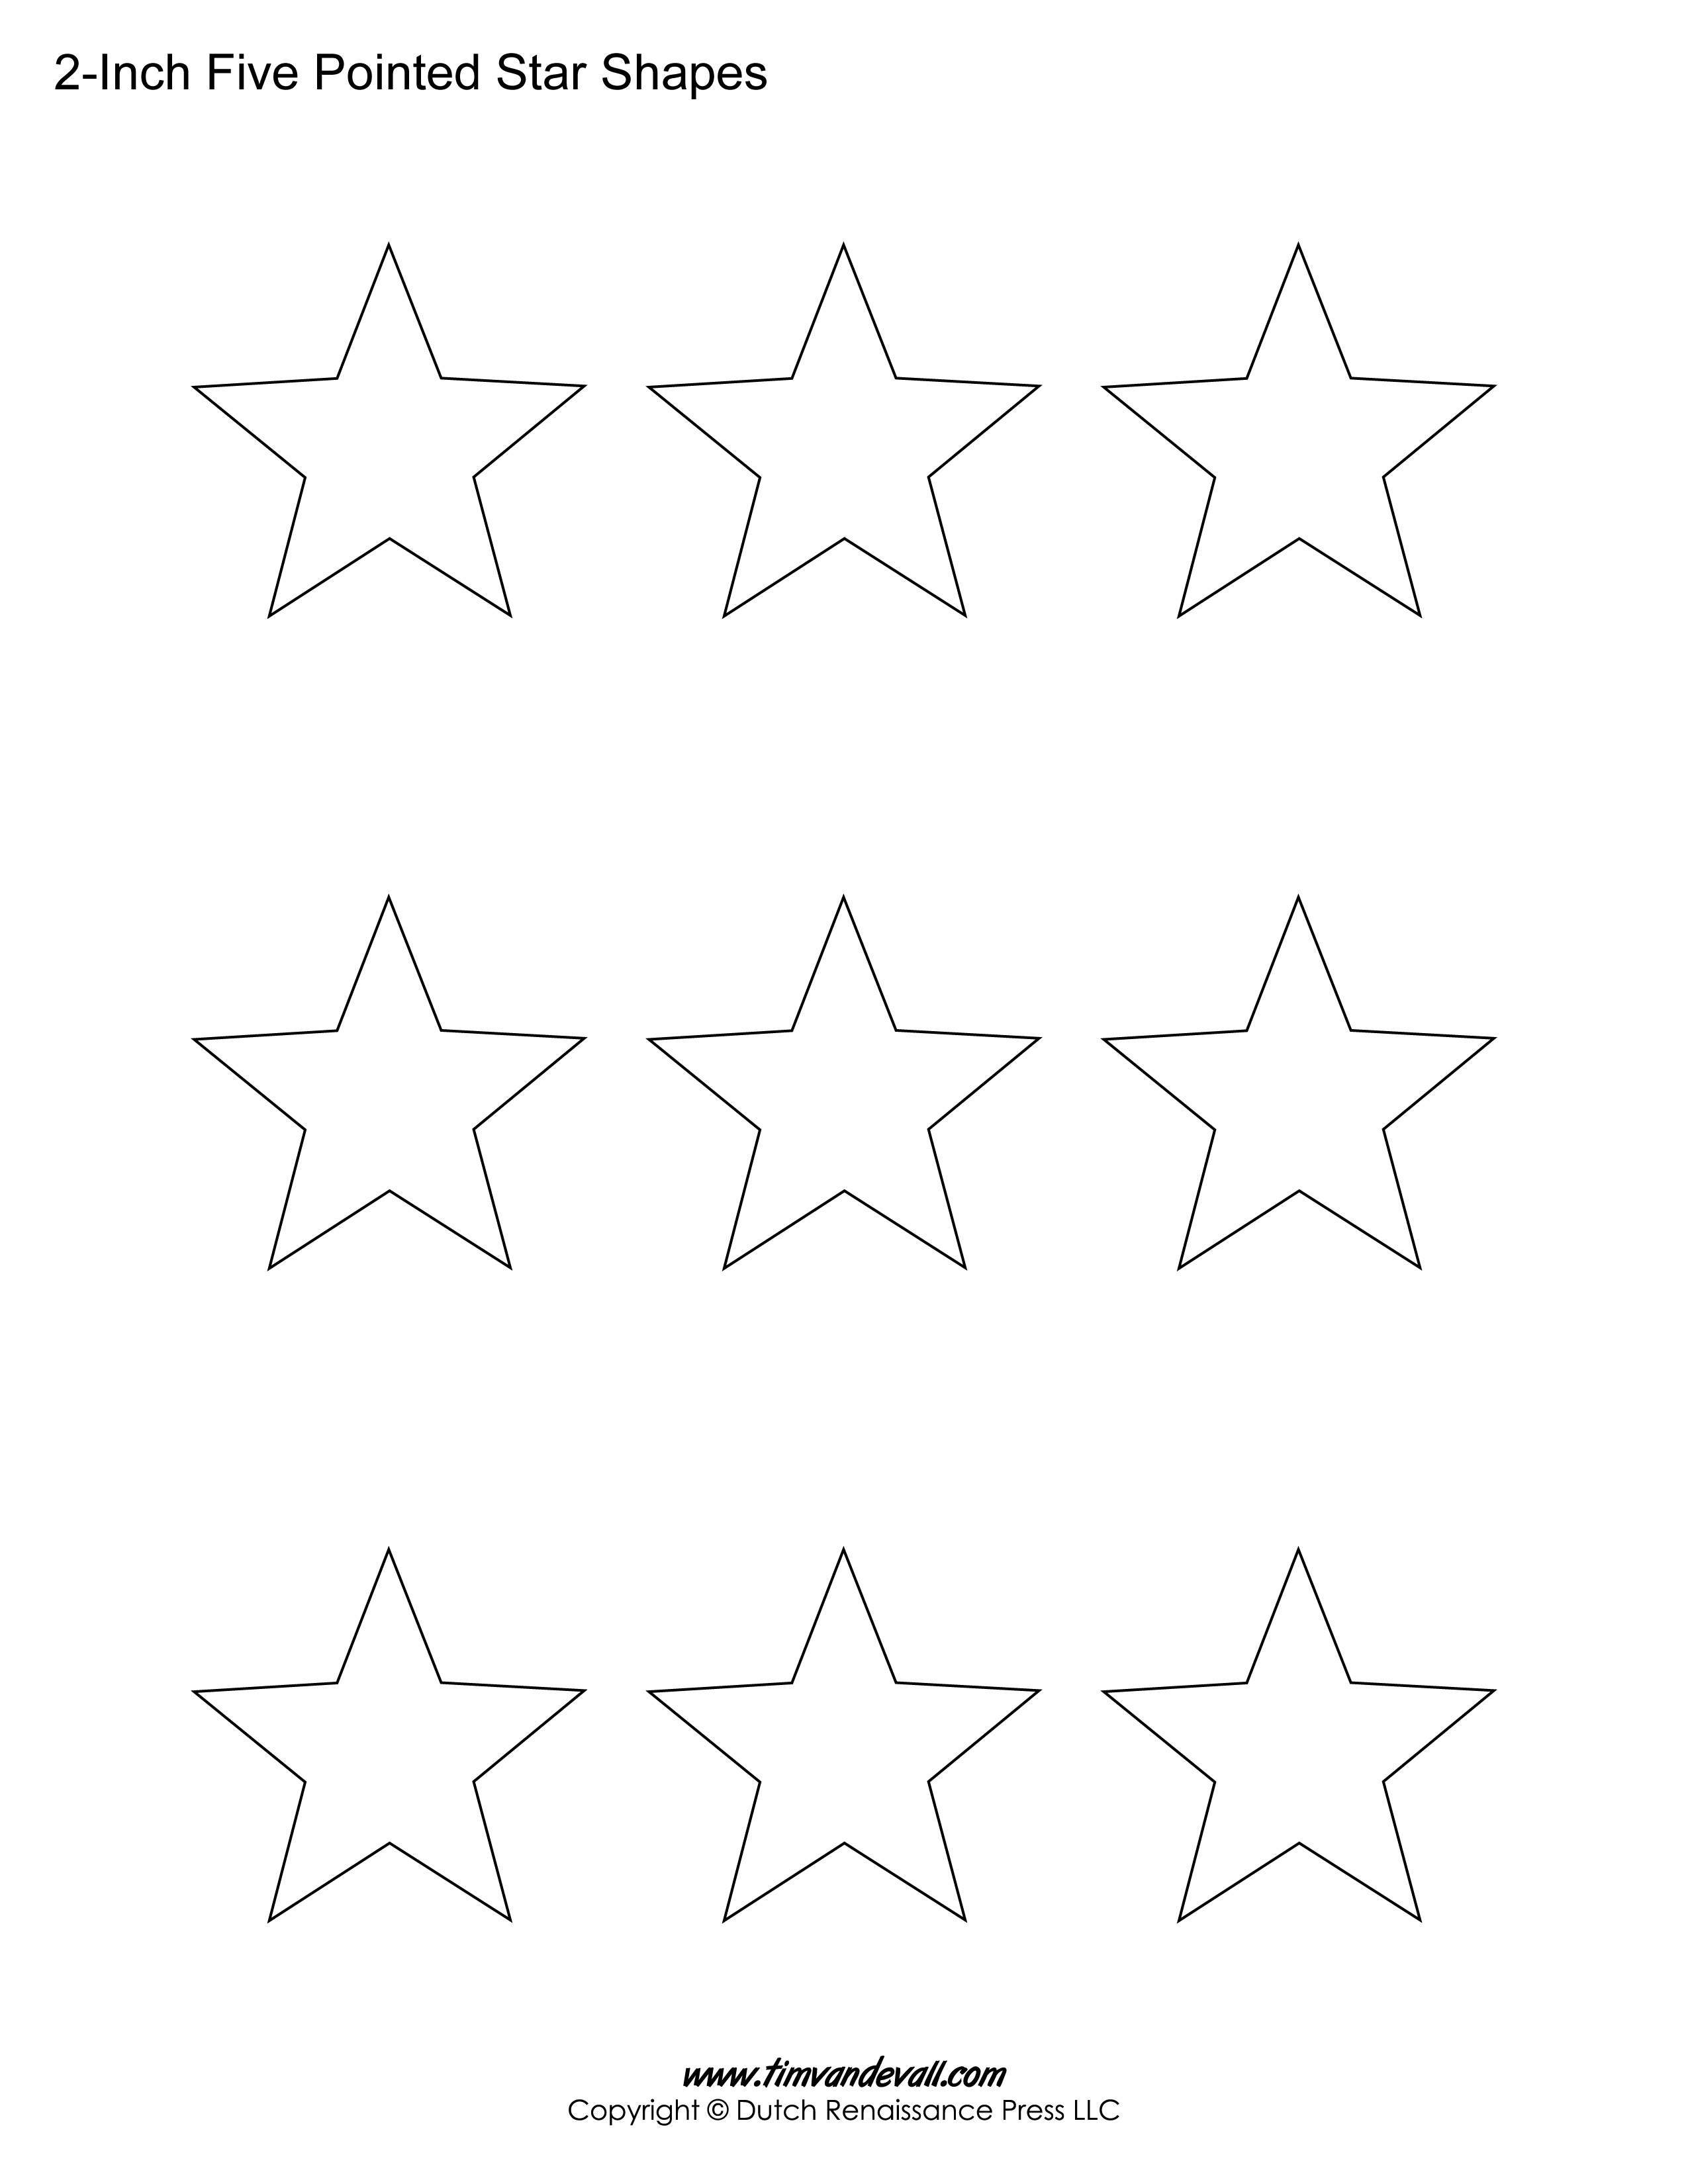 5 sided stars printable five pointed star templates blank shape pdfs on 3 7 8 inch printable template